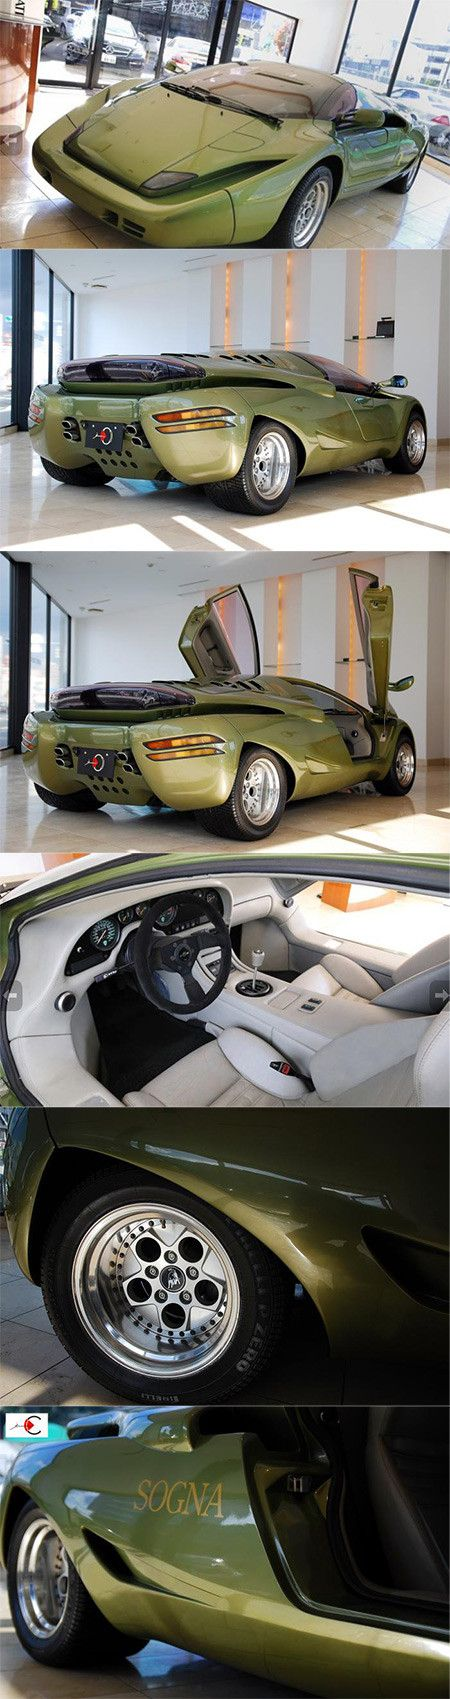 Ultra Rare Lamborghini Sogna Looks Like a Space Ship.  Ready to spend $3.27 million for it? (J Train)